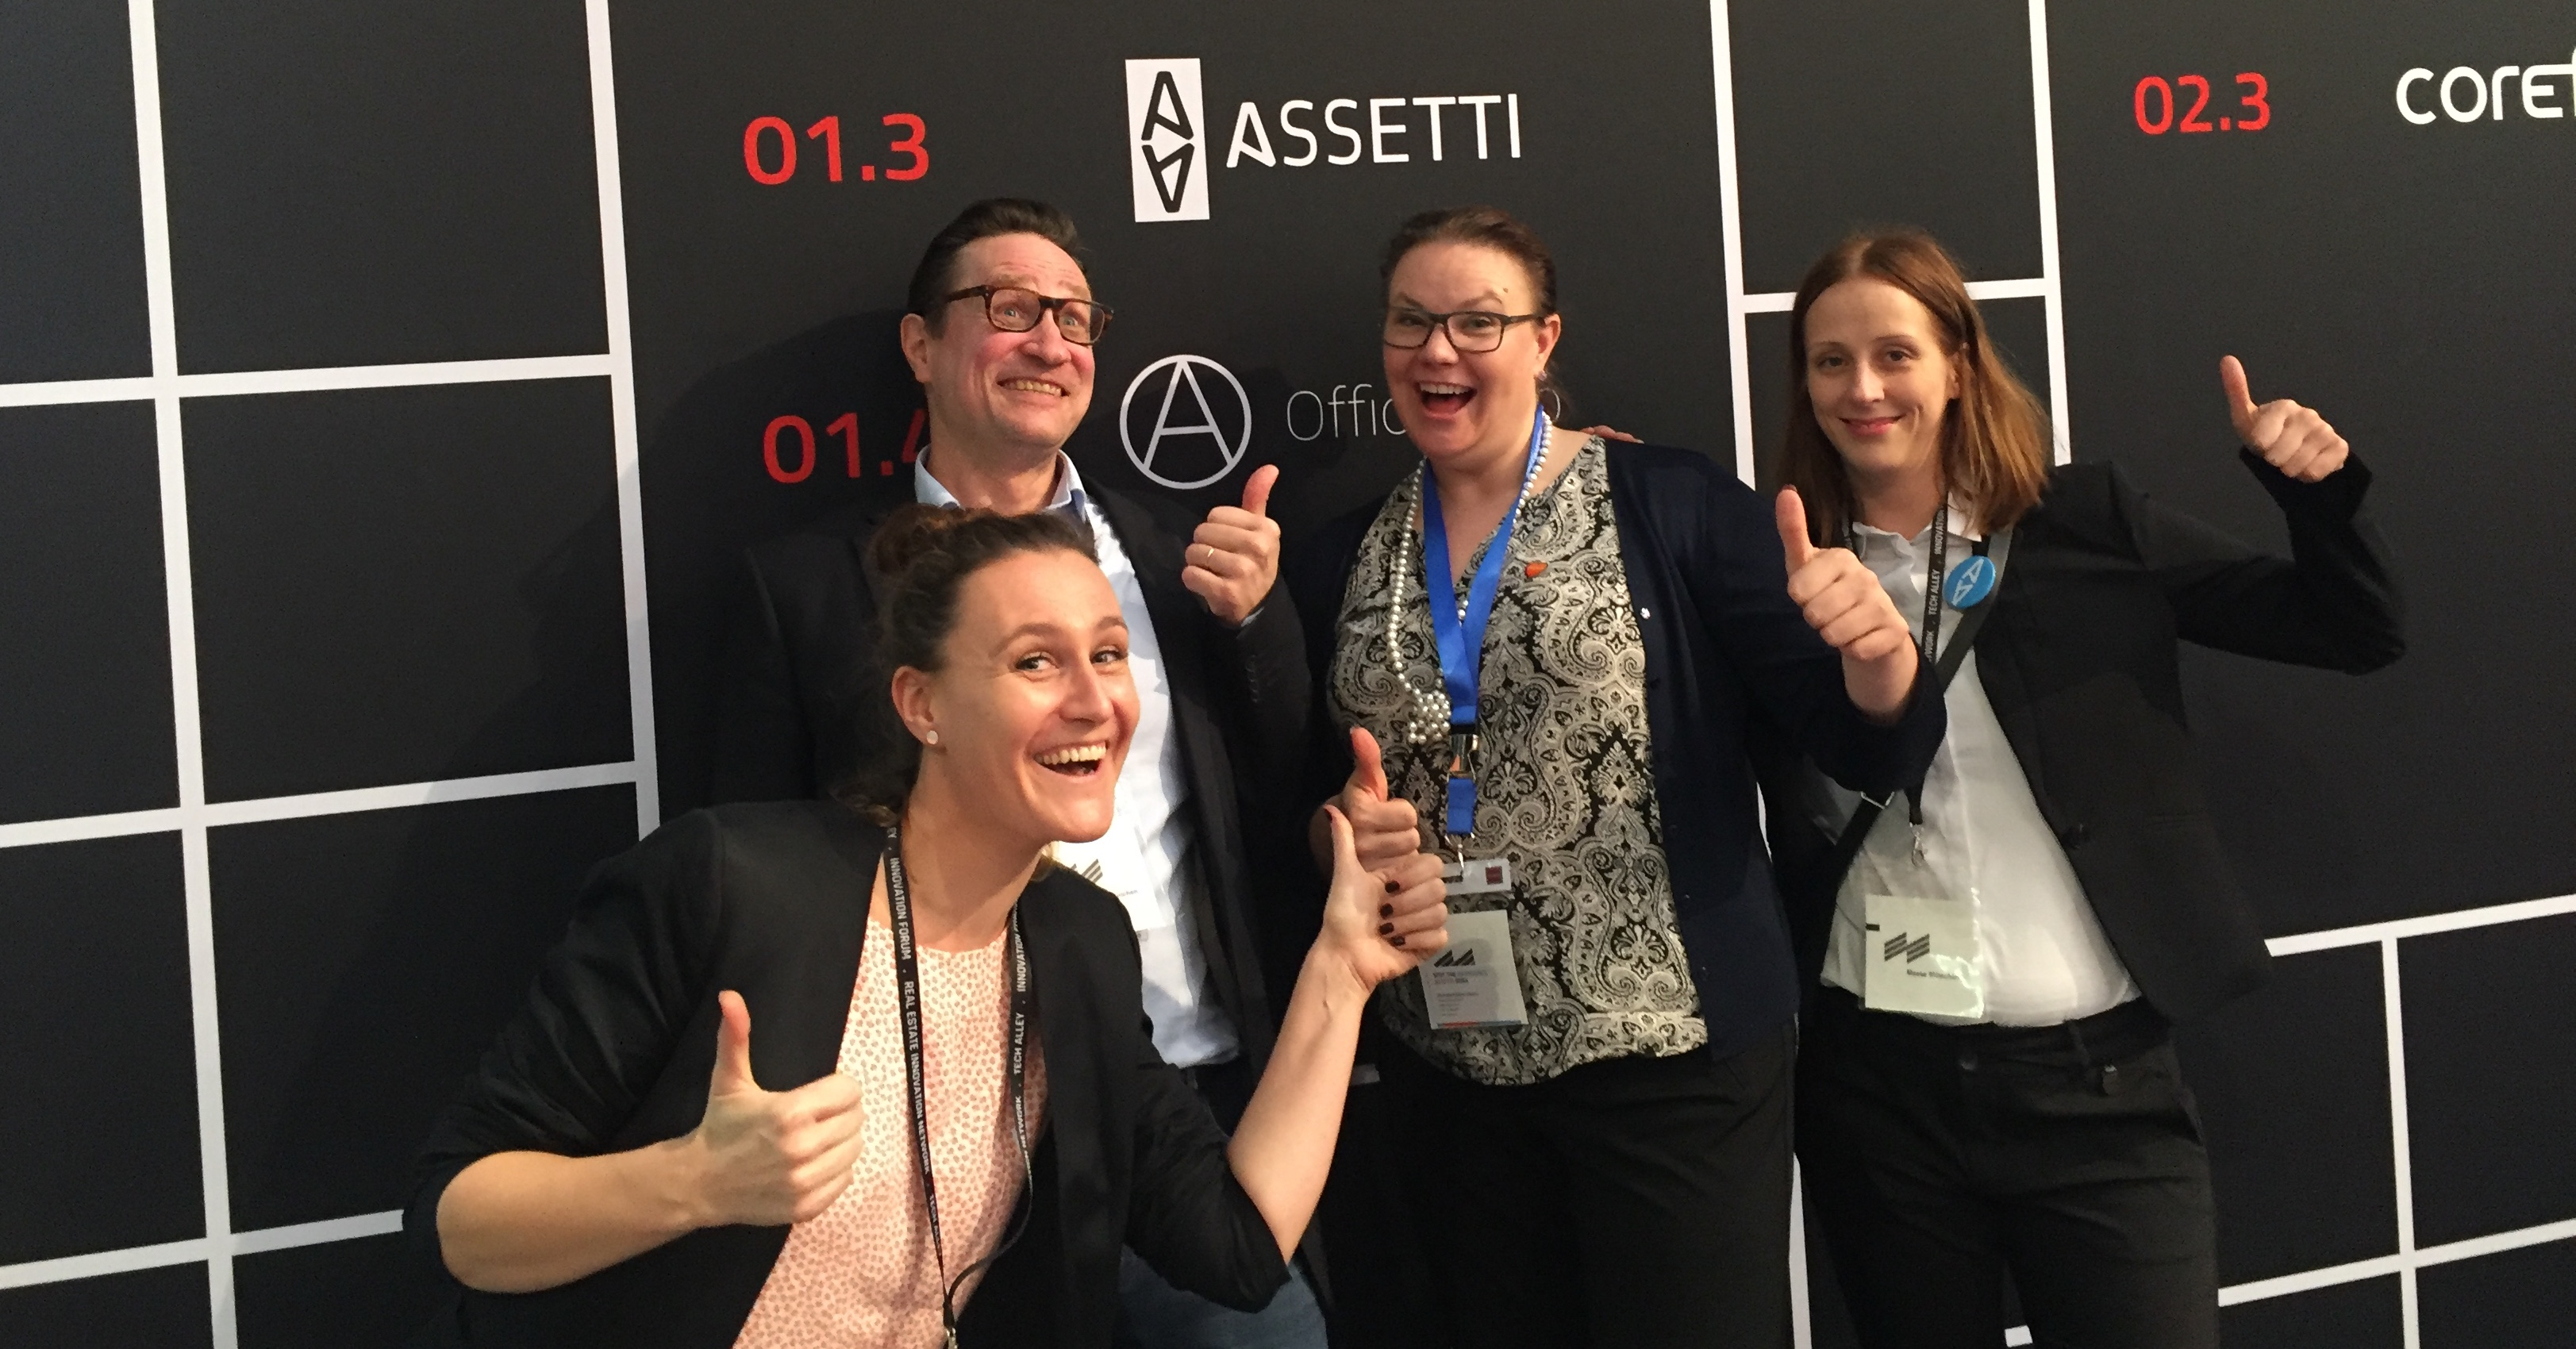 Assetti at European PropTech events